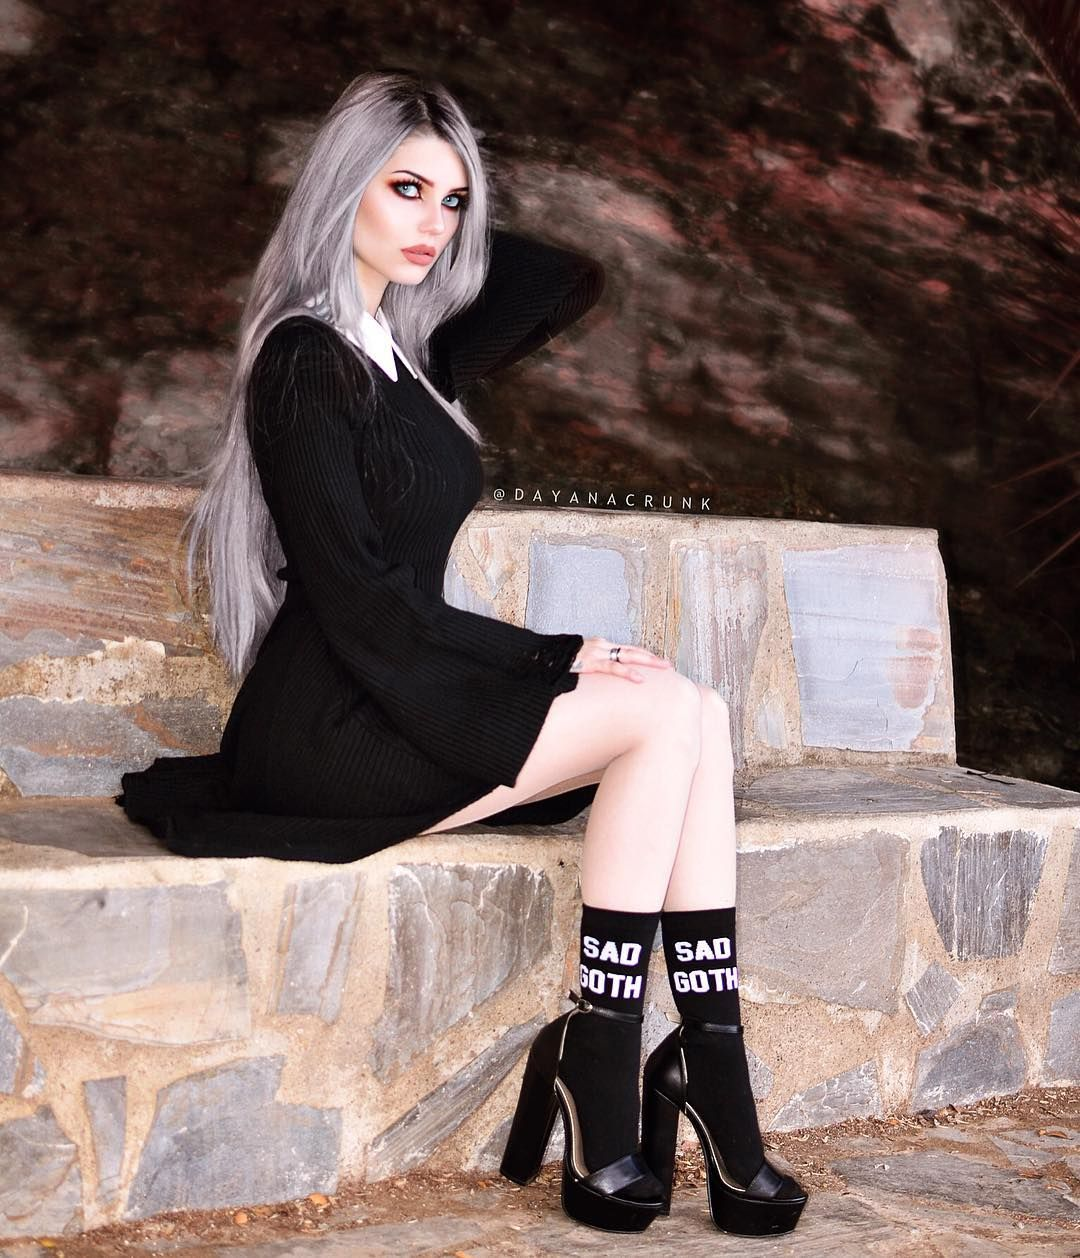 Goth Girl and Inspirational Gothic Model, Dayana Crunk 'Melgares'